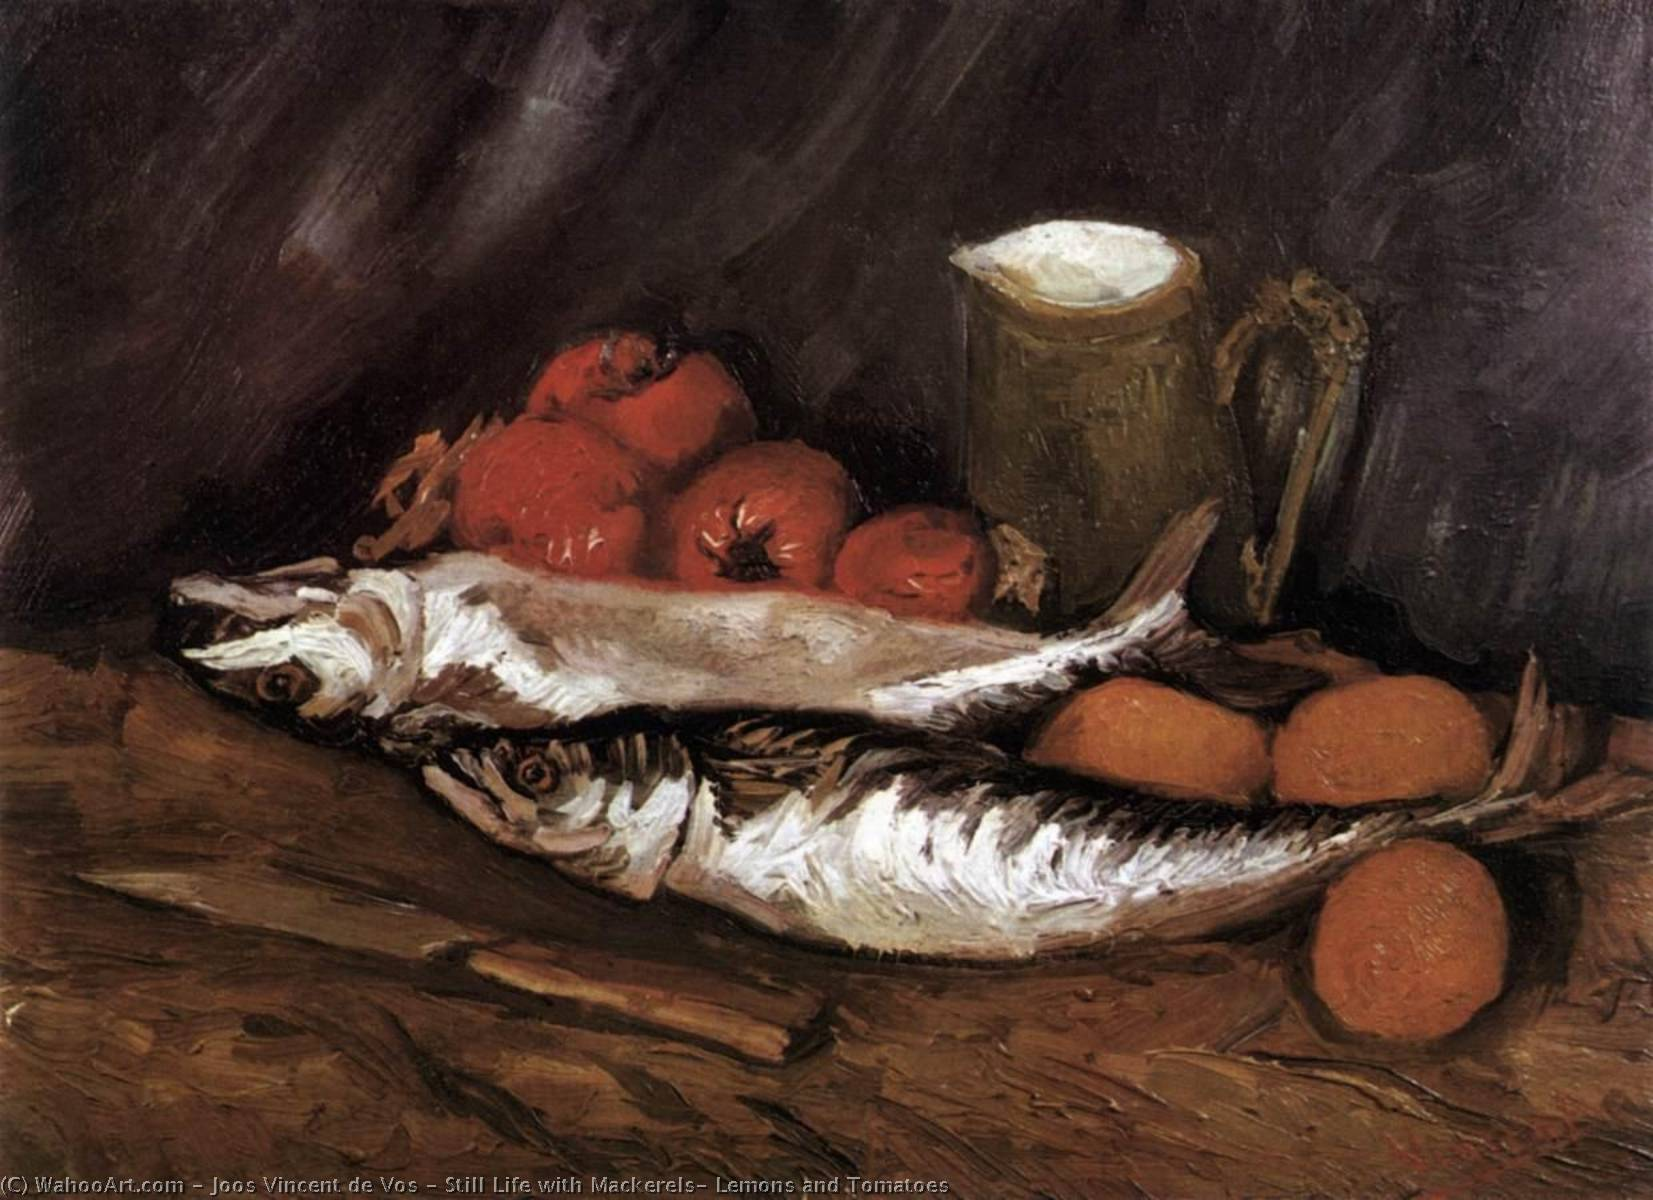 Still Life with Mackerels, Lemons and Tomatoes, Oil On Canvas by Joos Vincent De Vos (1853-1890, Netherlands)